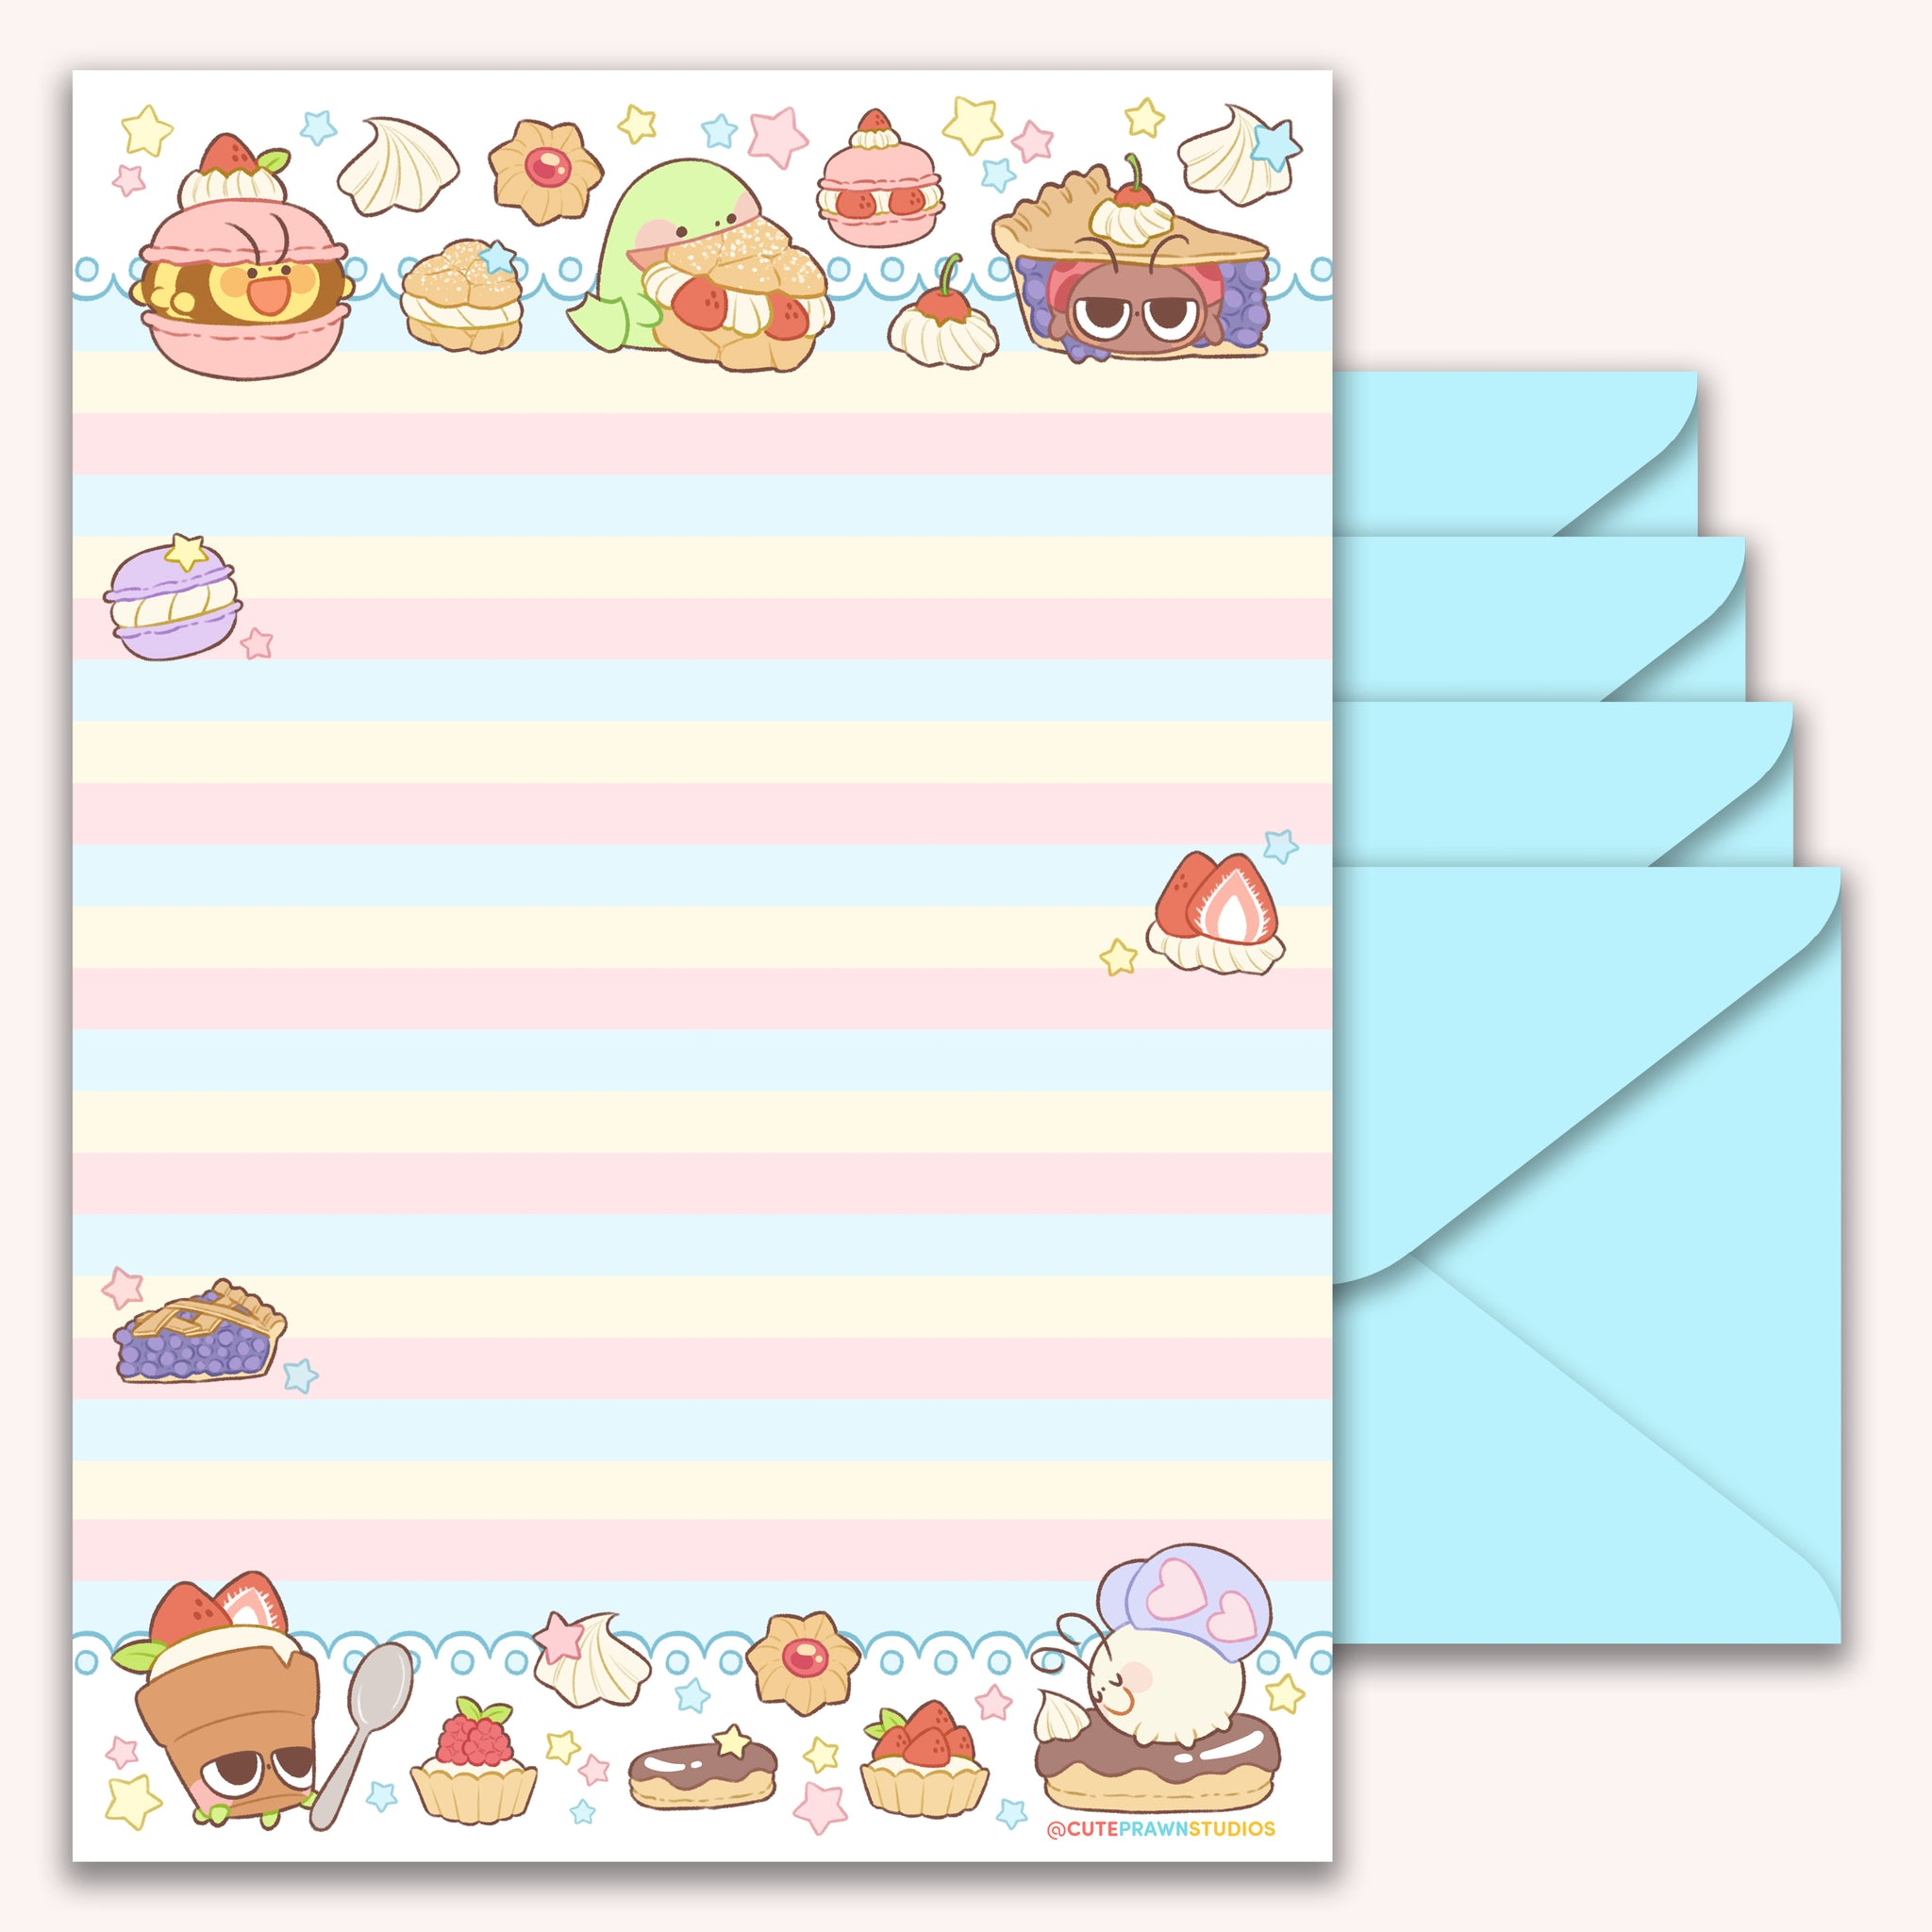 Pastry Crawlies Letter Pad